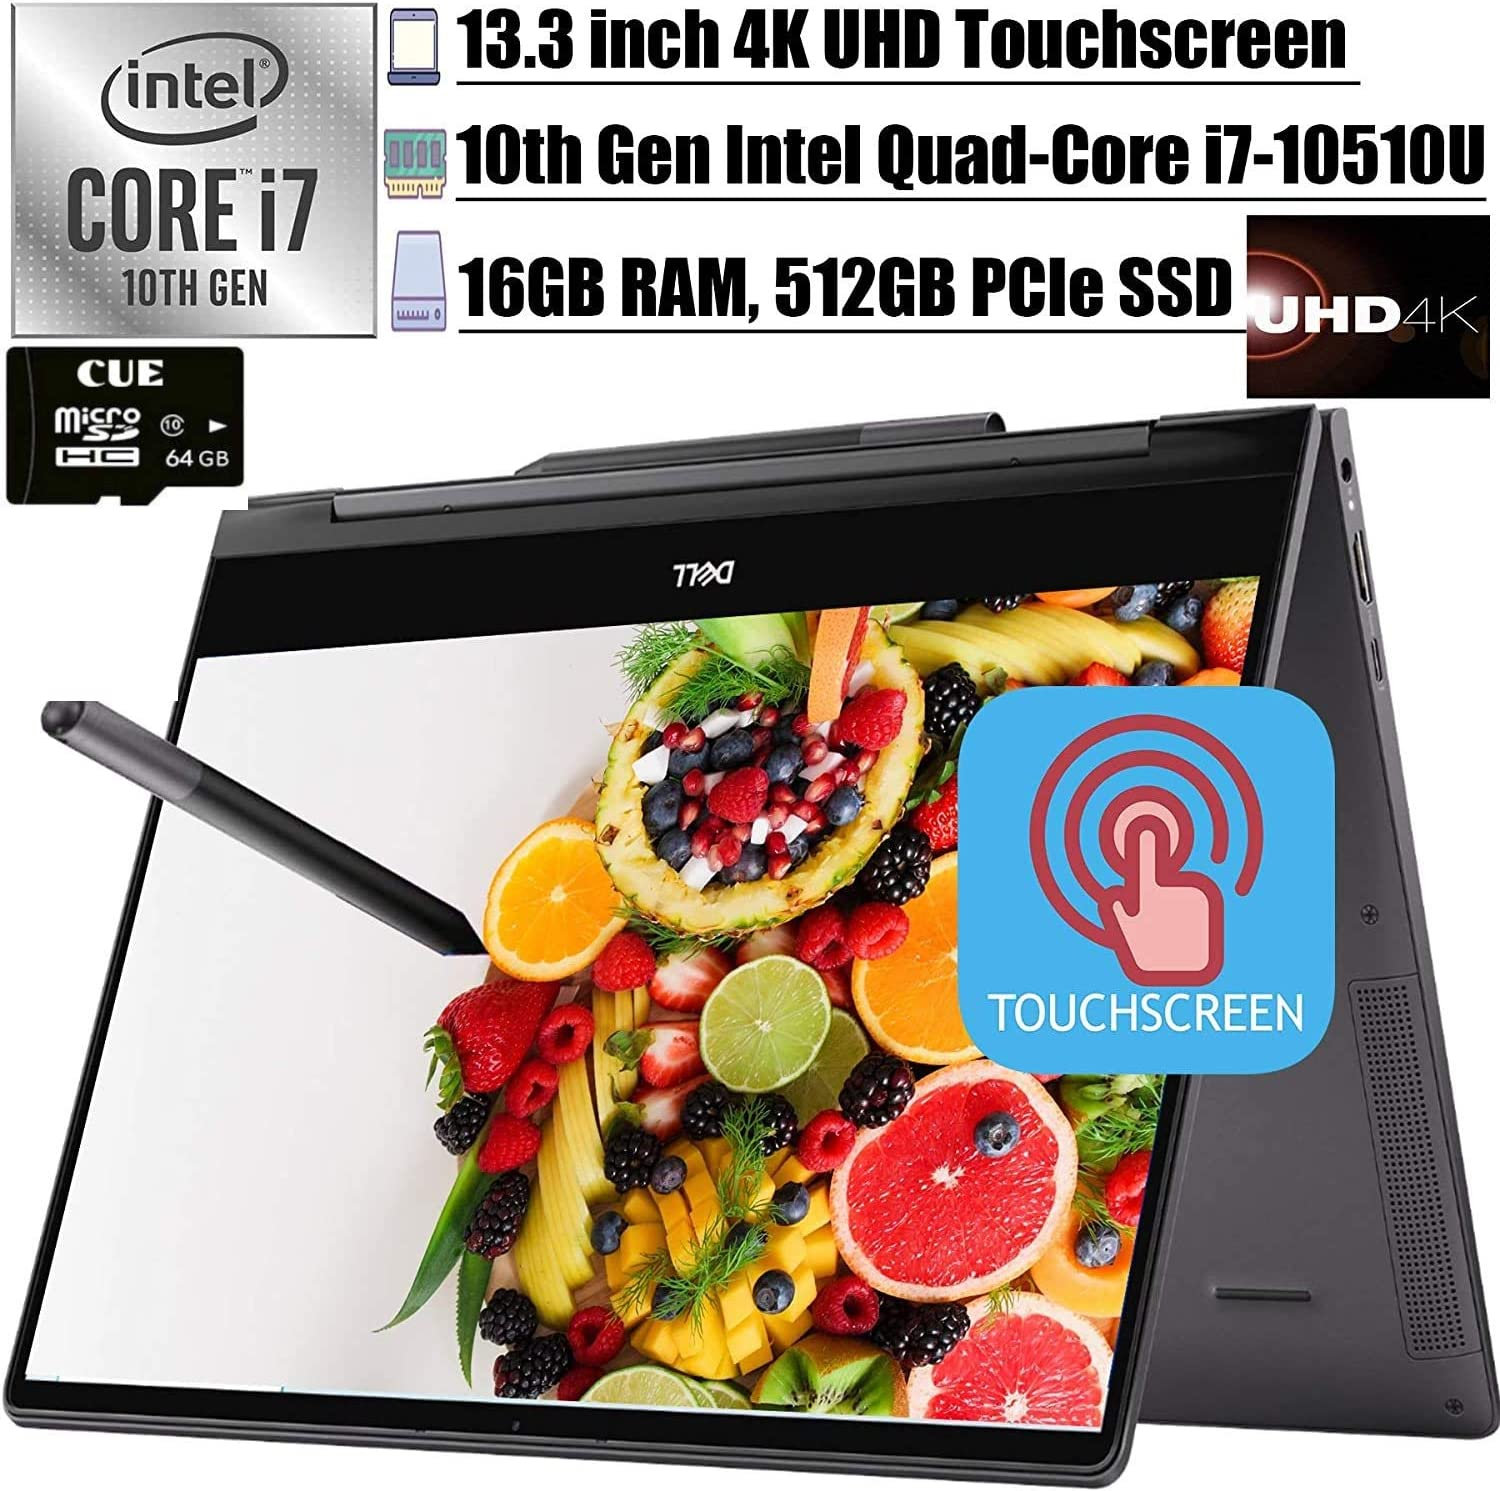 2020 Latest Dell Inspiron 13 7000 2-in-1 Laoptop 13.3